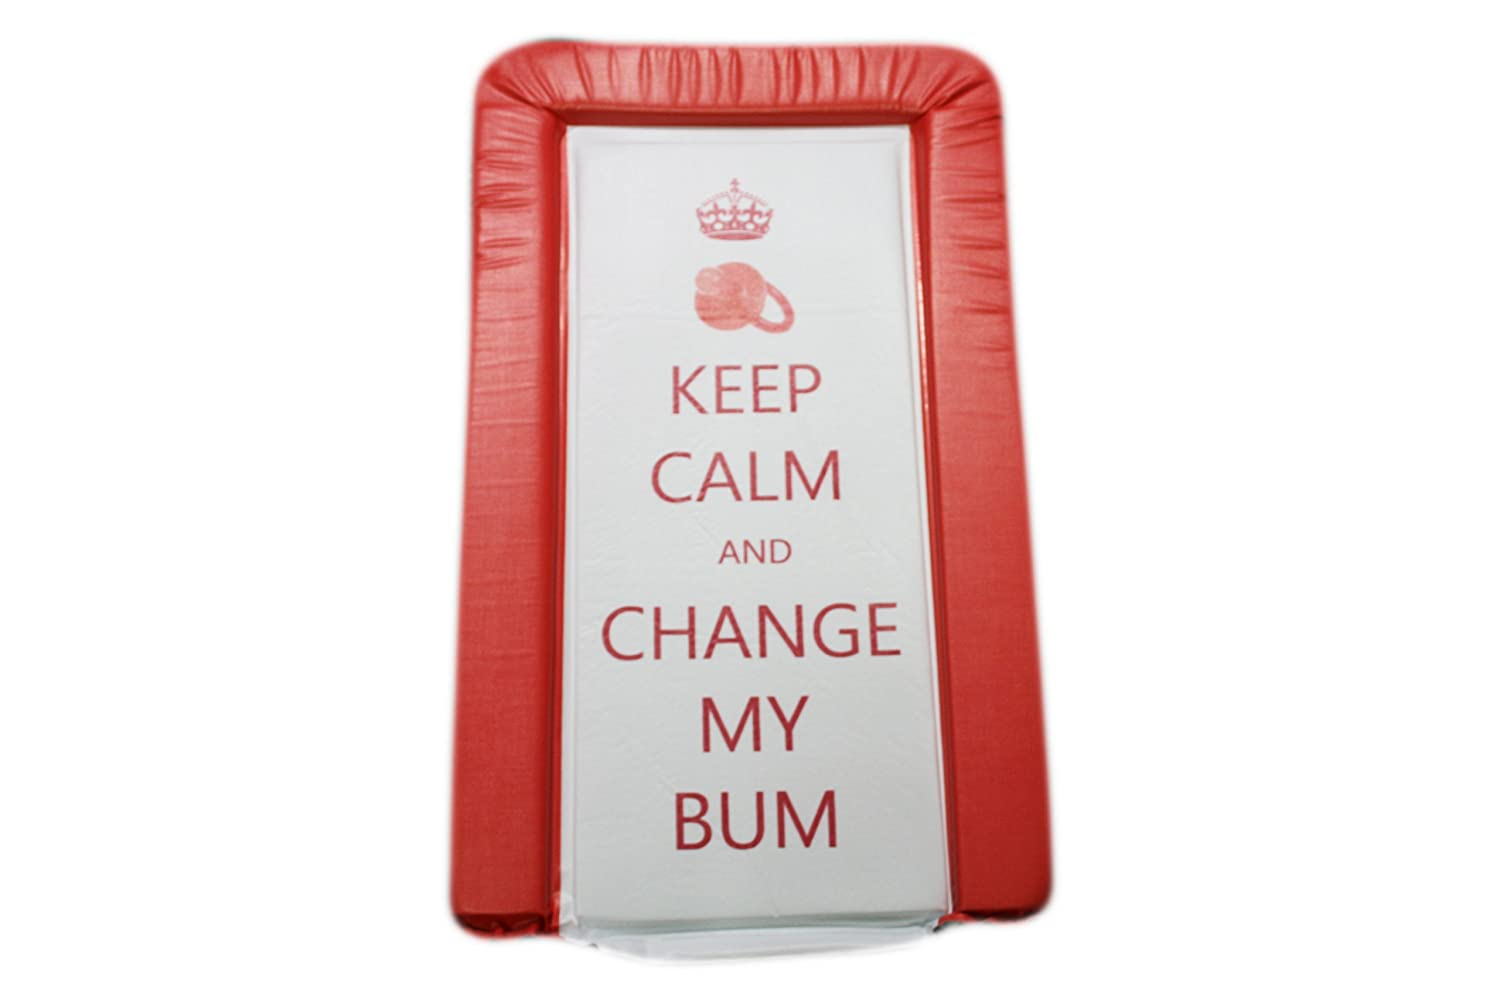 Matelas Tapis A Langer B/éb/é Keep Calm and Change My Bum Rouge Unisexe Luxe Rembourr/é et Imperm/éable